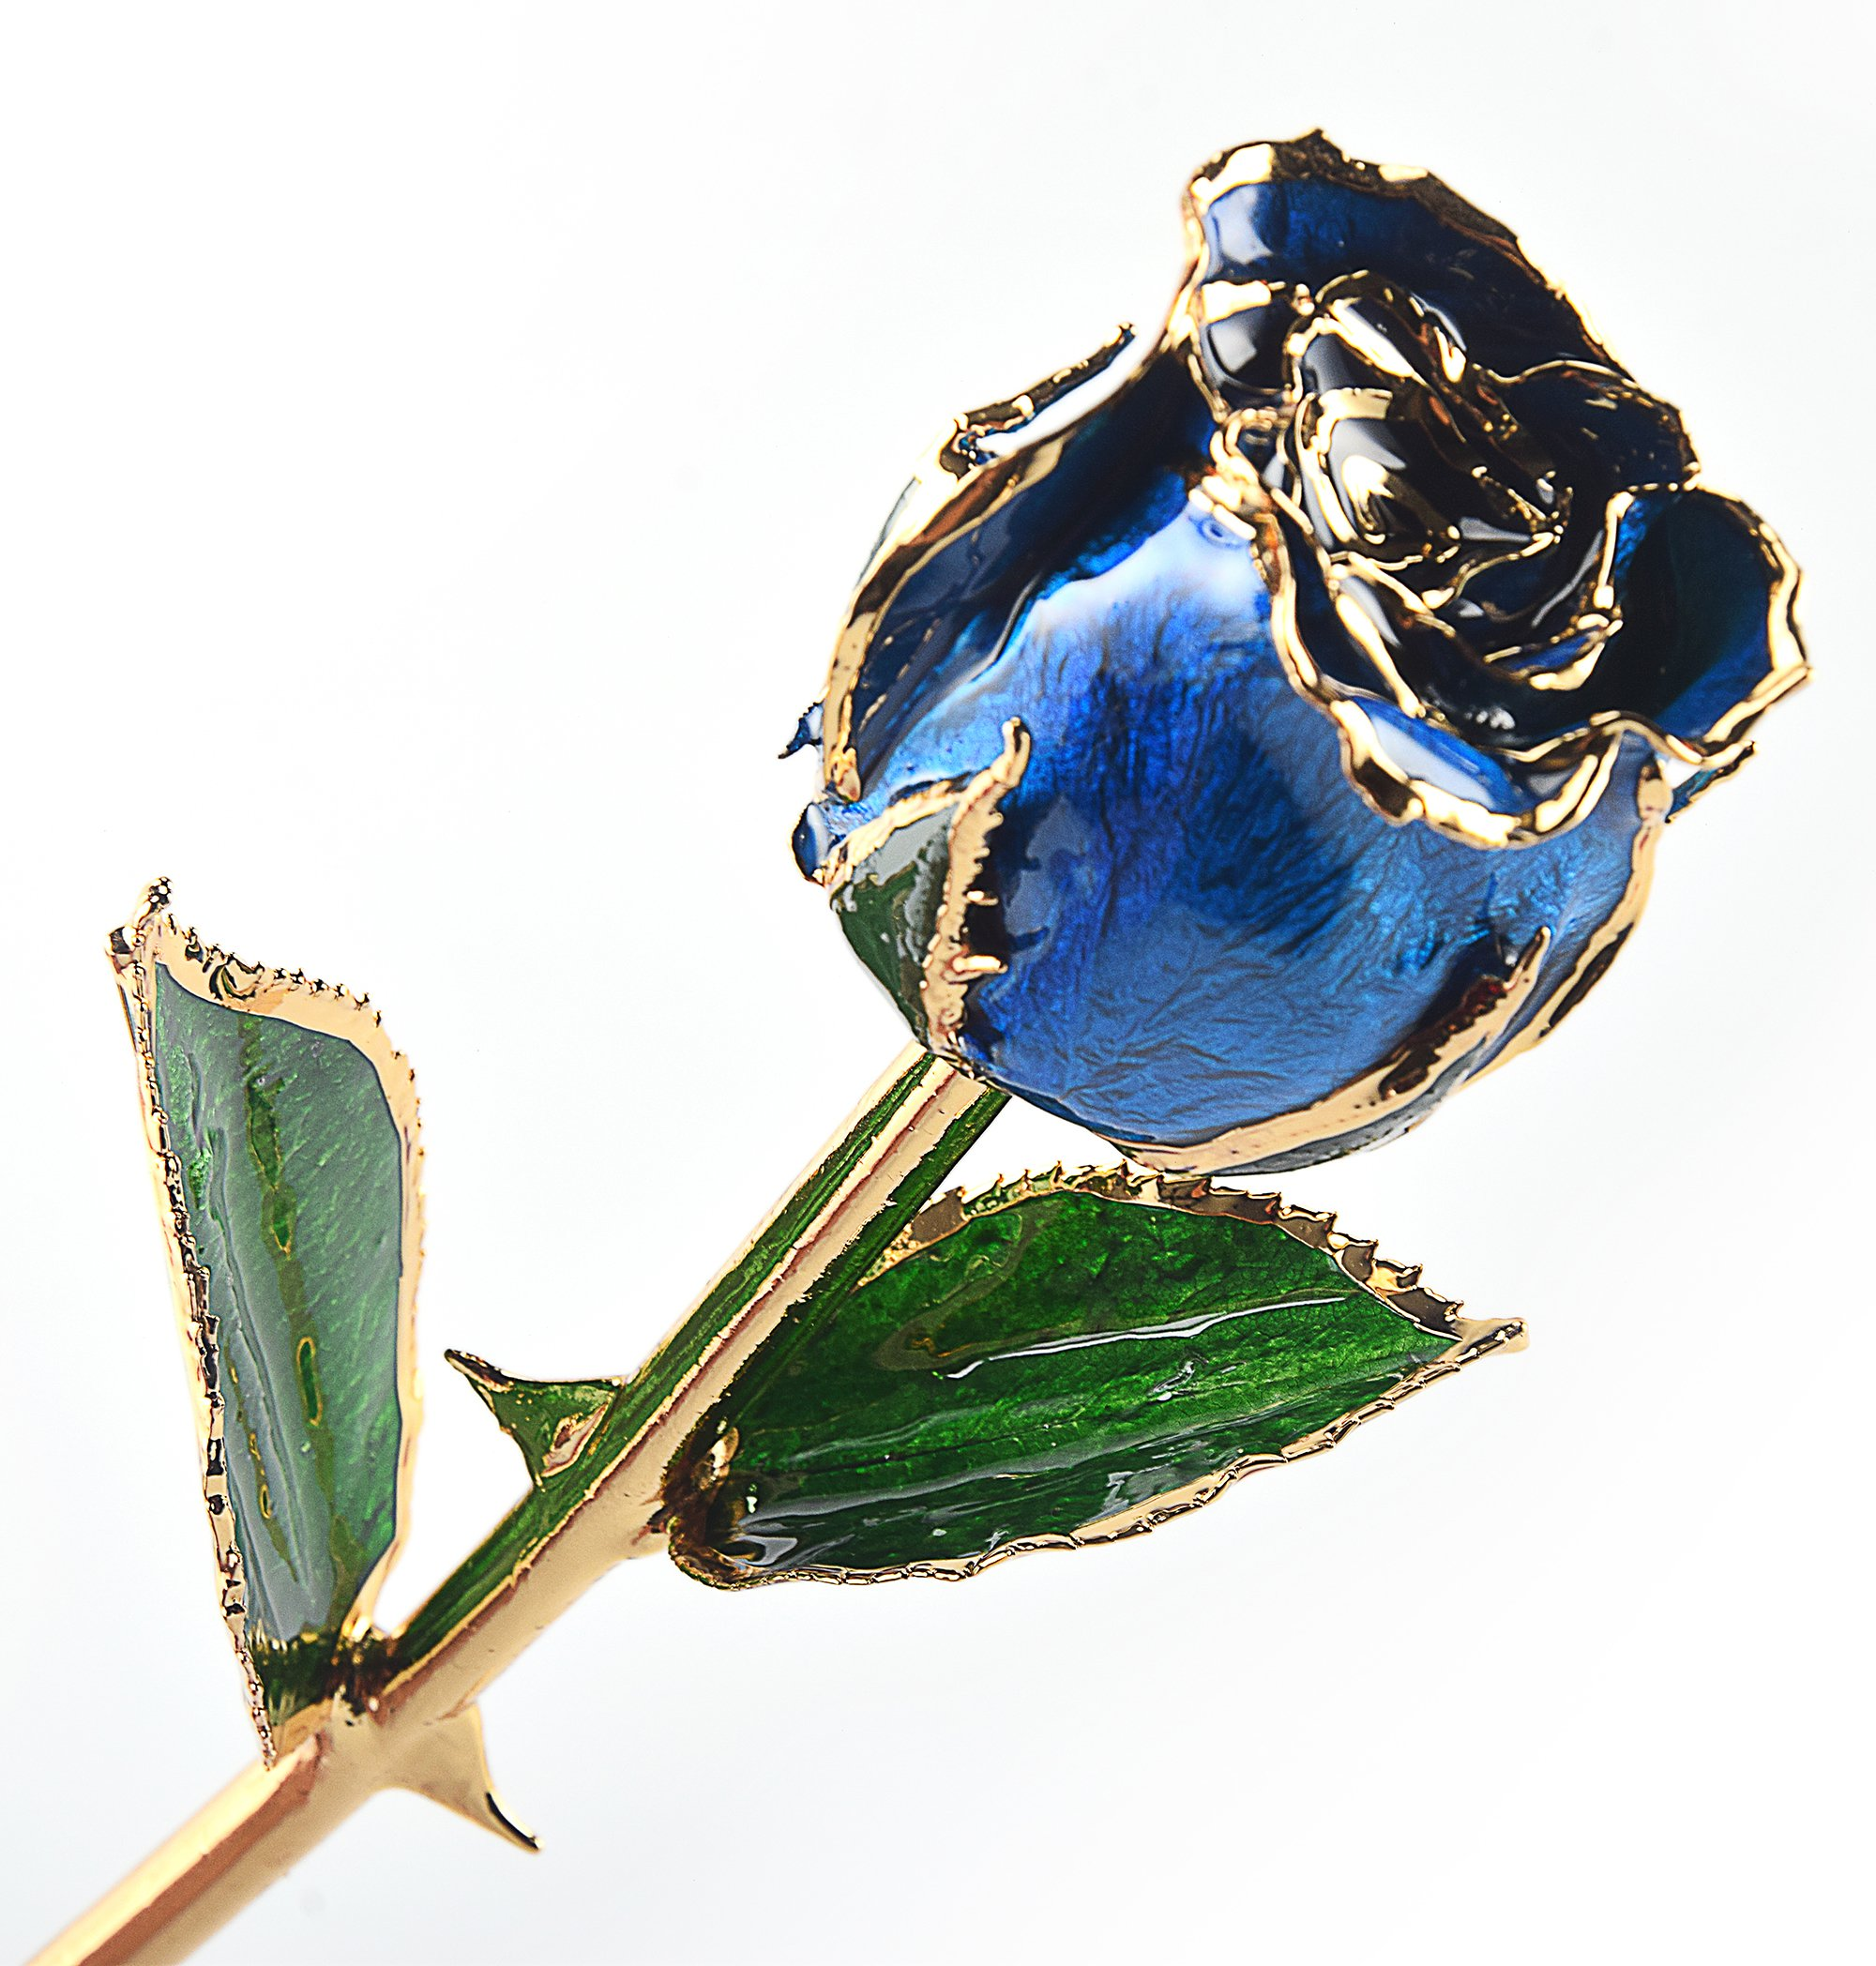 M Dream Long Stem Trimmed 24K Real Rose Dipped in Gold Blue 11 Inches Set of 1,Best Gift for Her, Women, Girlfriends, Wife, Girl, Valentine's Day, Mother's Day, Anniversary, Birthday, Wedding by M Dream